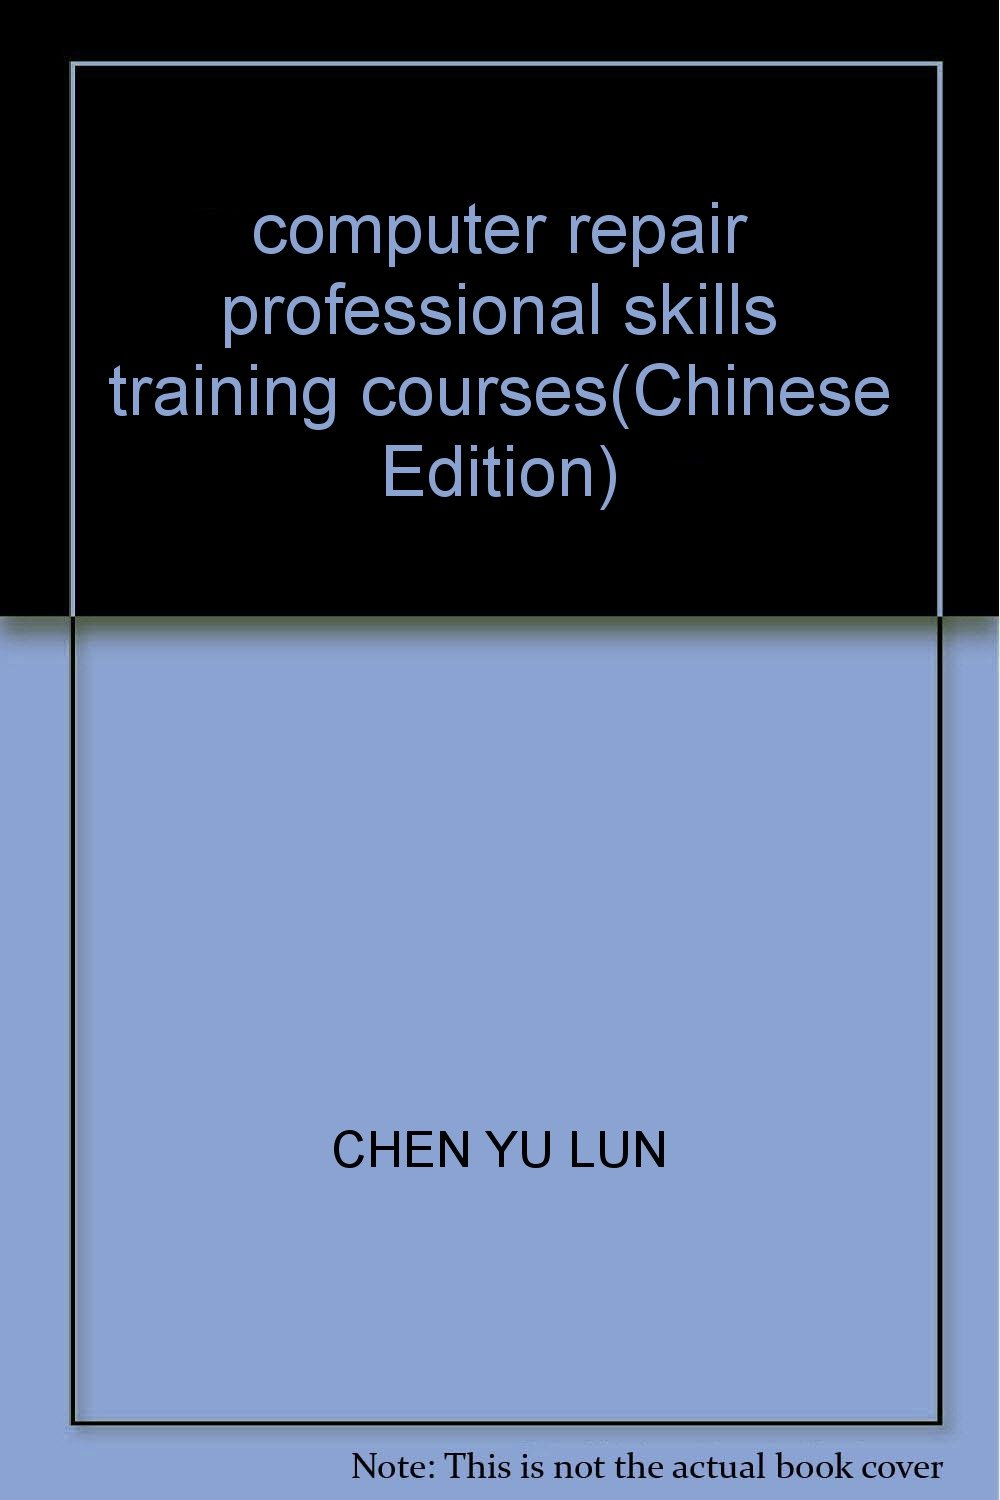 Download computer repair professional skills training courses(Chinese Edition) pdf epub